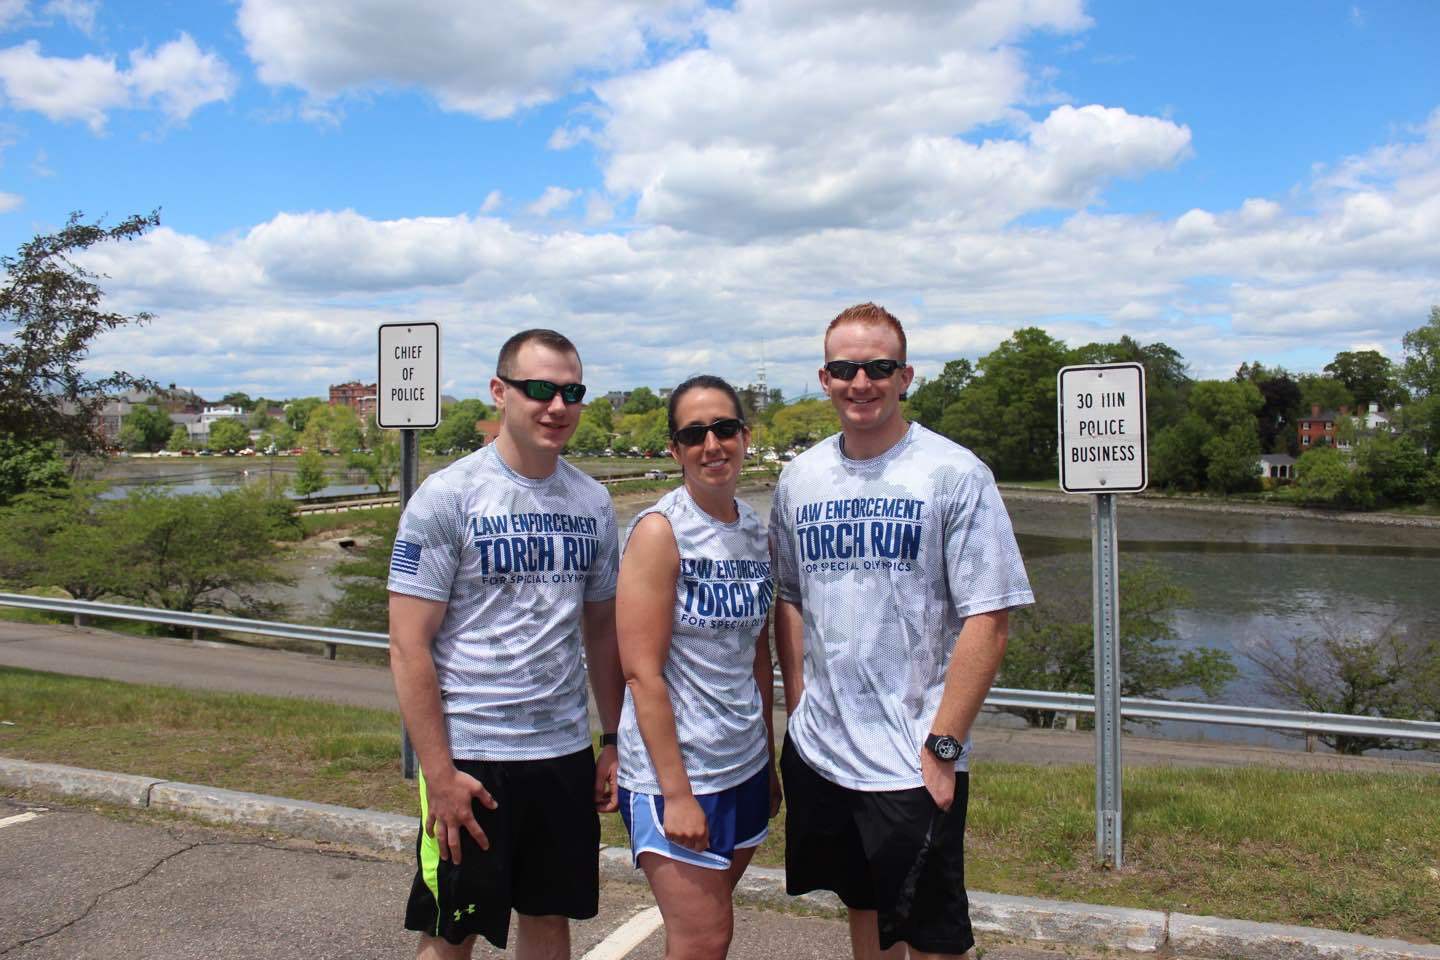 Police officers in running gear for the Torch Run